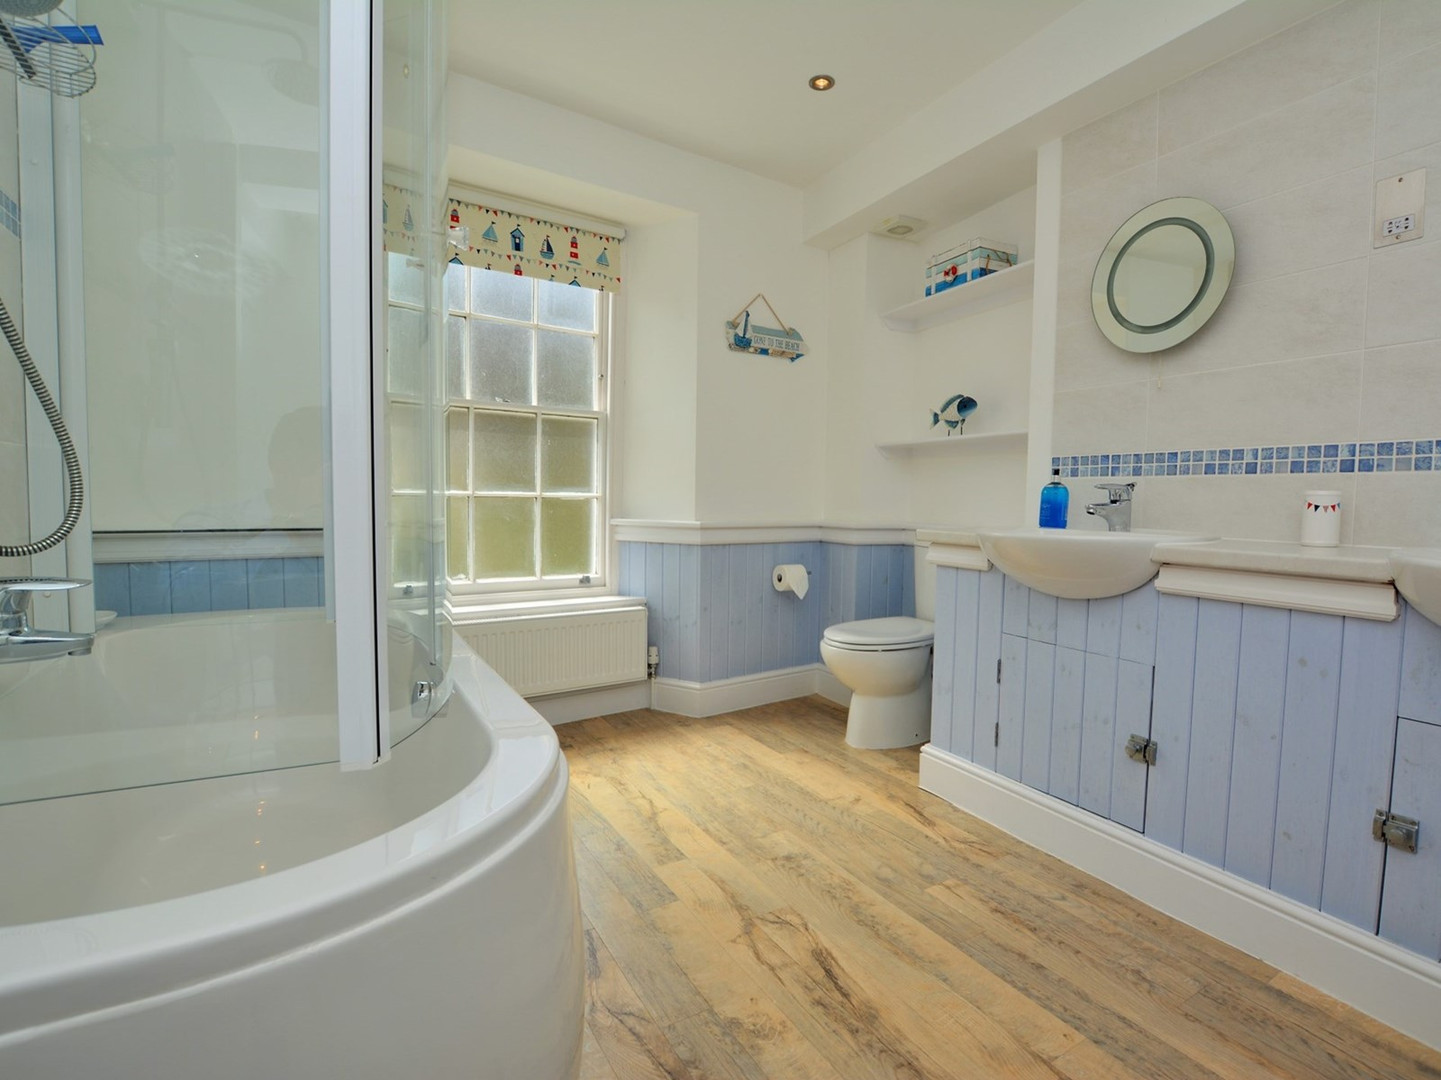 Second floor bathroom (shared by two twin rooms)